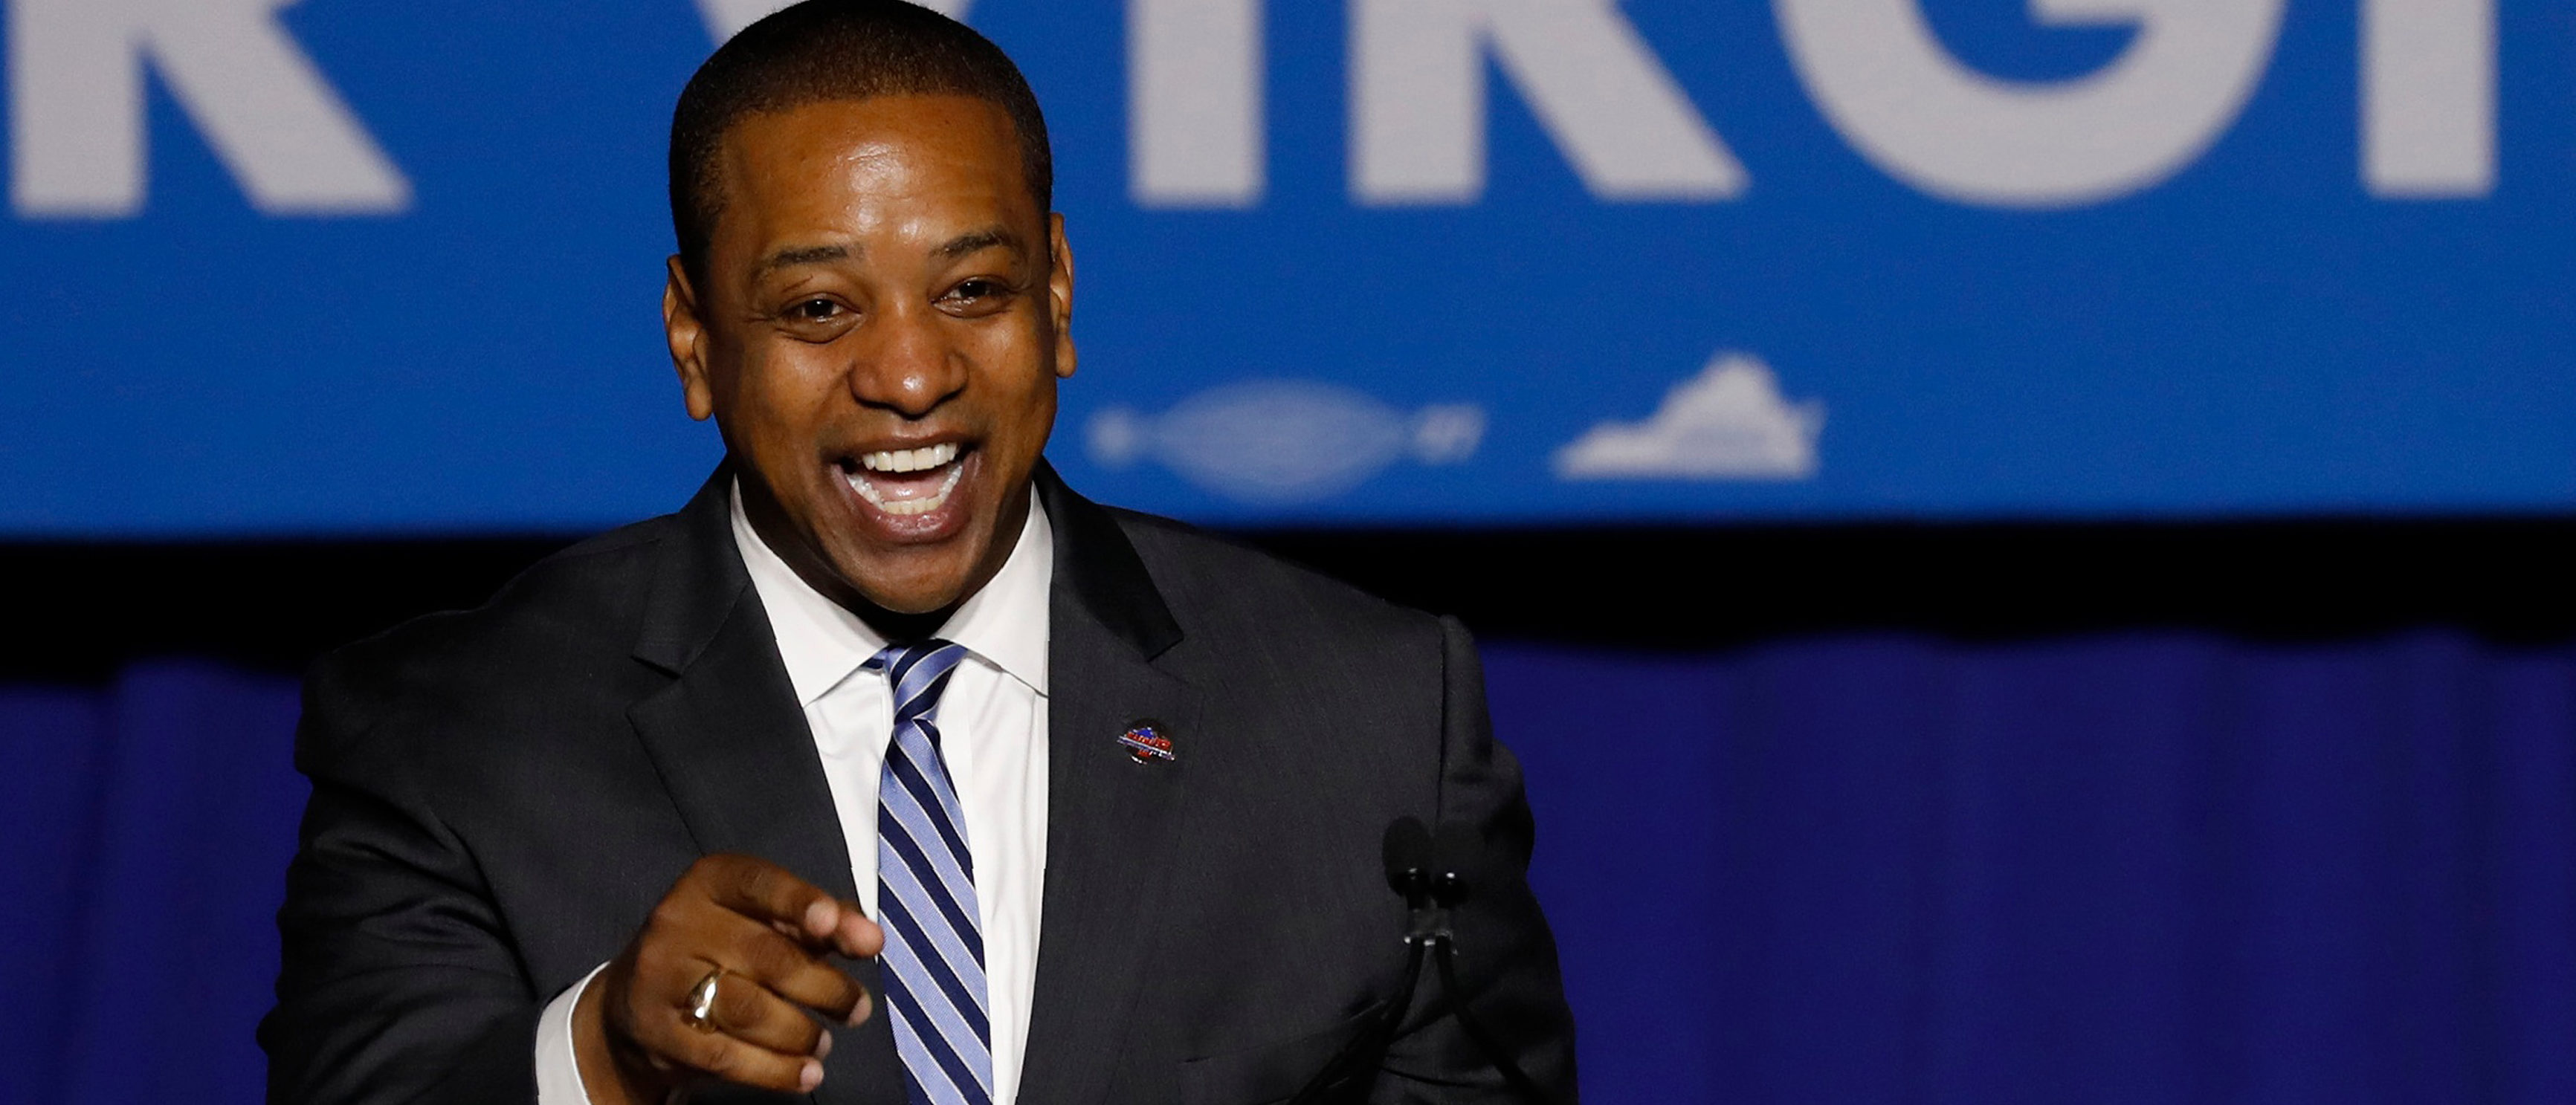 Lieutenant Governor Elect Justin Fairfax speaks at Ralph Northam's election night victory rally on the campus of George Mason University in Fairfax, Virginia, November 7, 2017. REUTERS/Aaron P. Bernstein